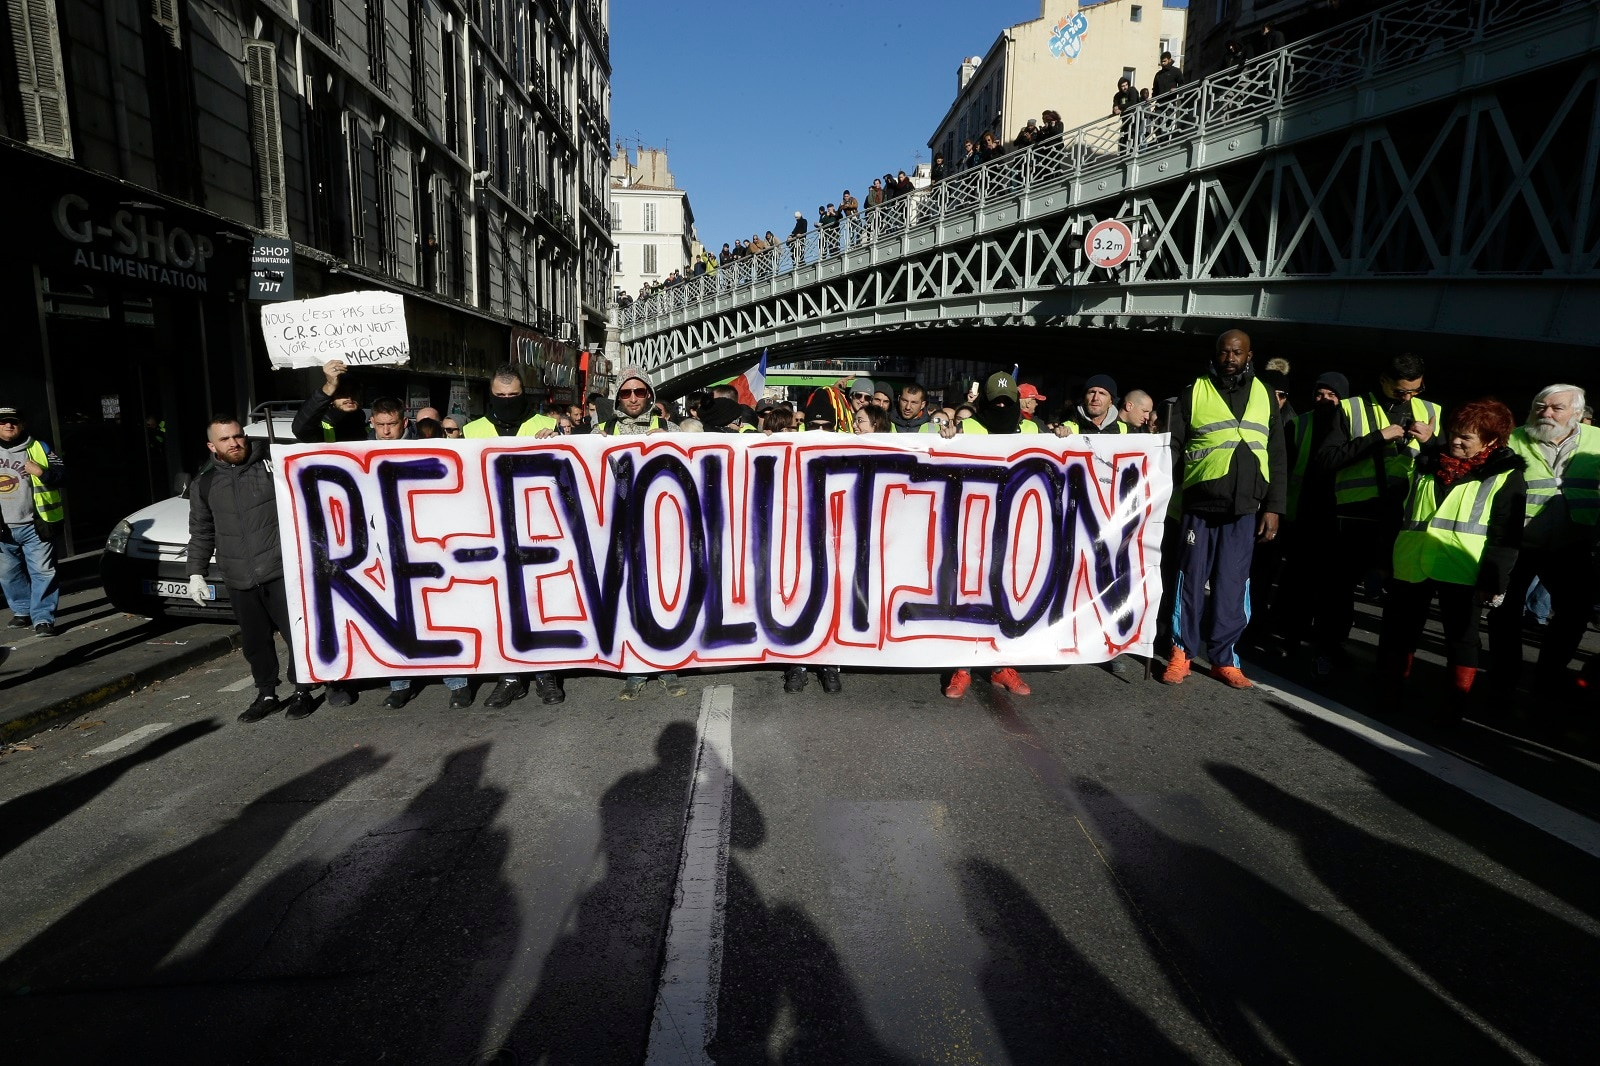 Demonstrators wearing yellow vests hold a banner during a march.(AP Photo/Claude Paris)